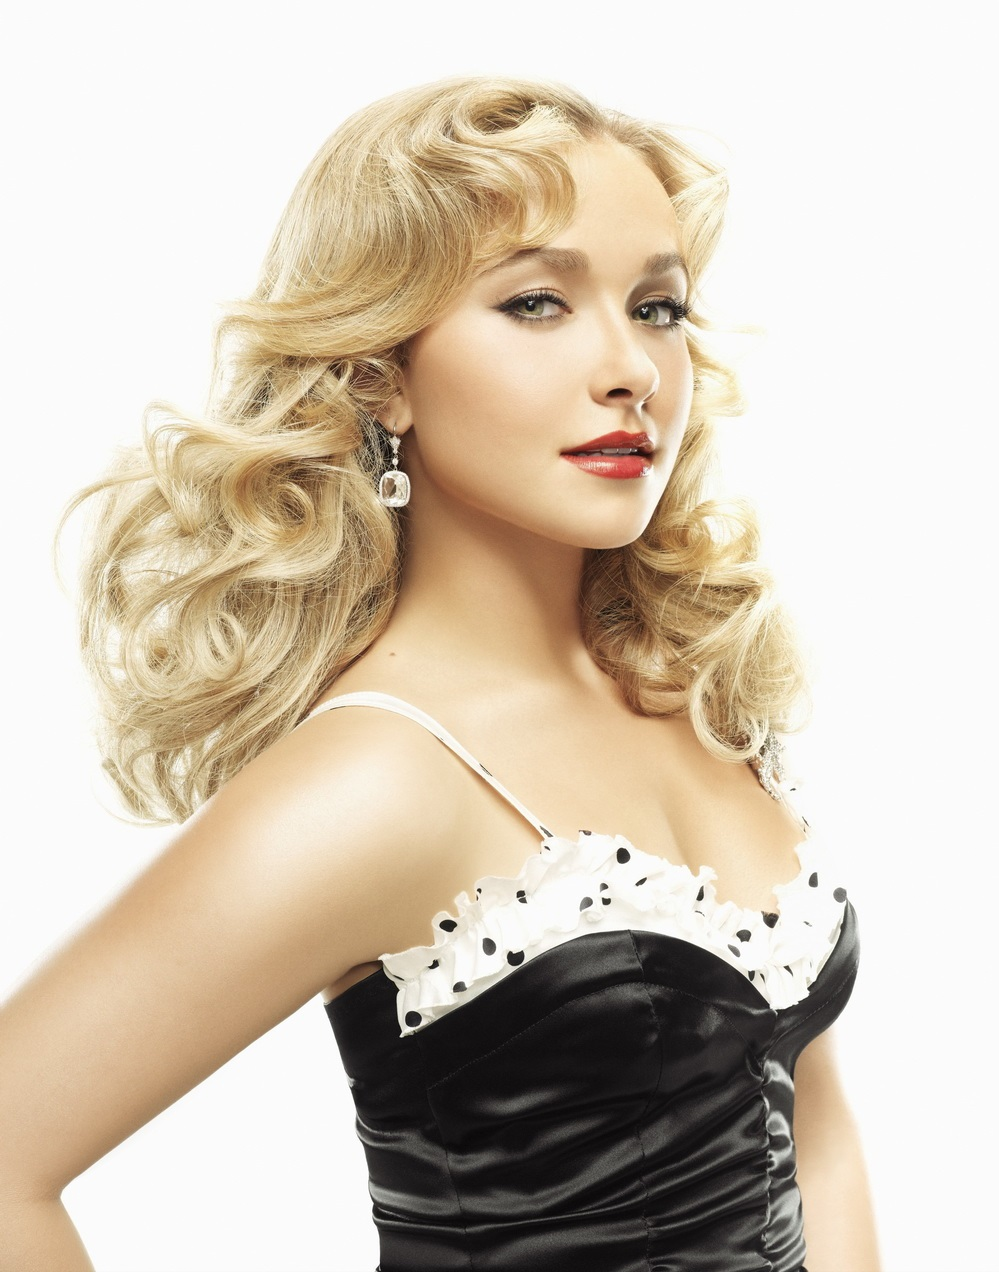 Hayden panettiere cleavage frankly, you